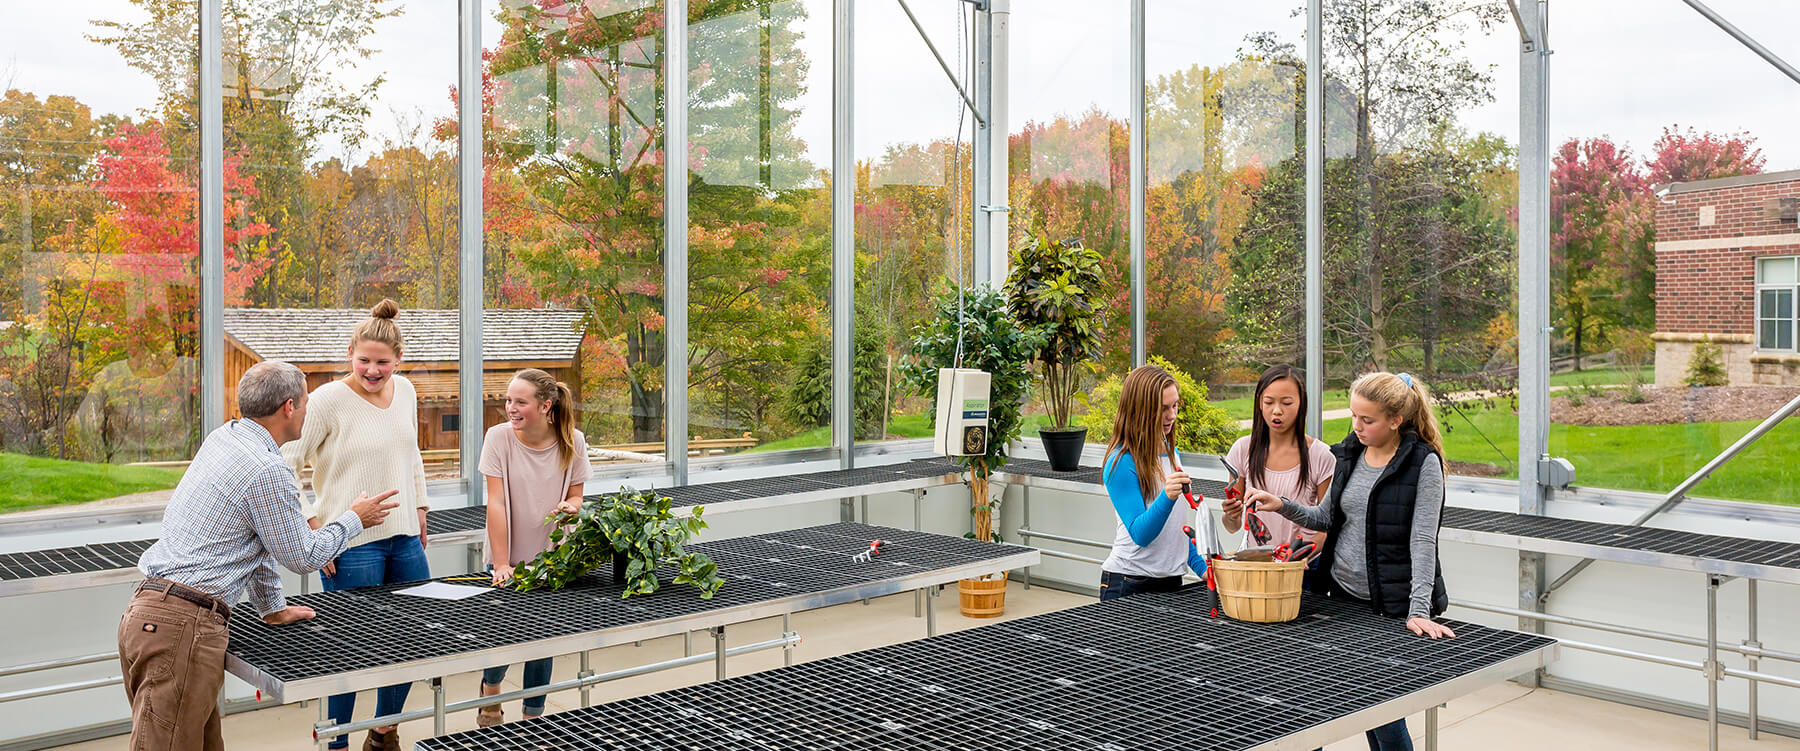 Ada Christian Integrated Outdoor Education greenhouse lesson